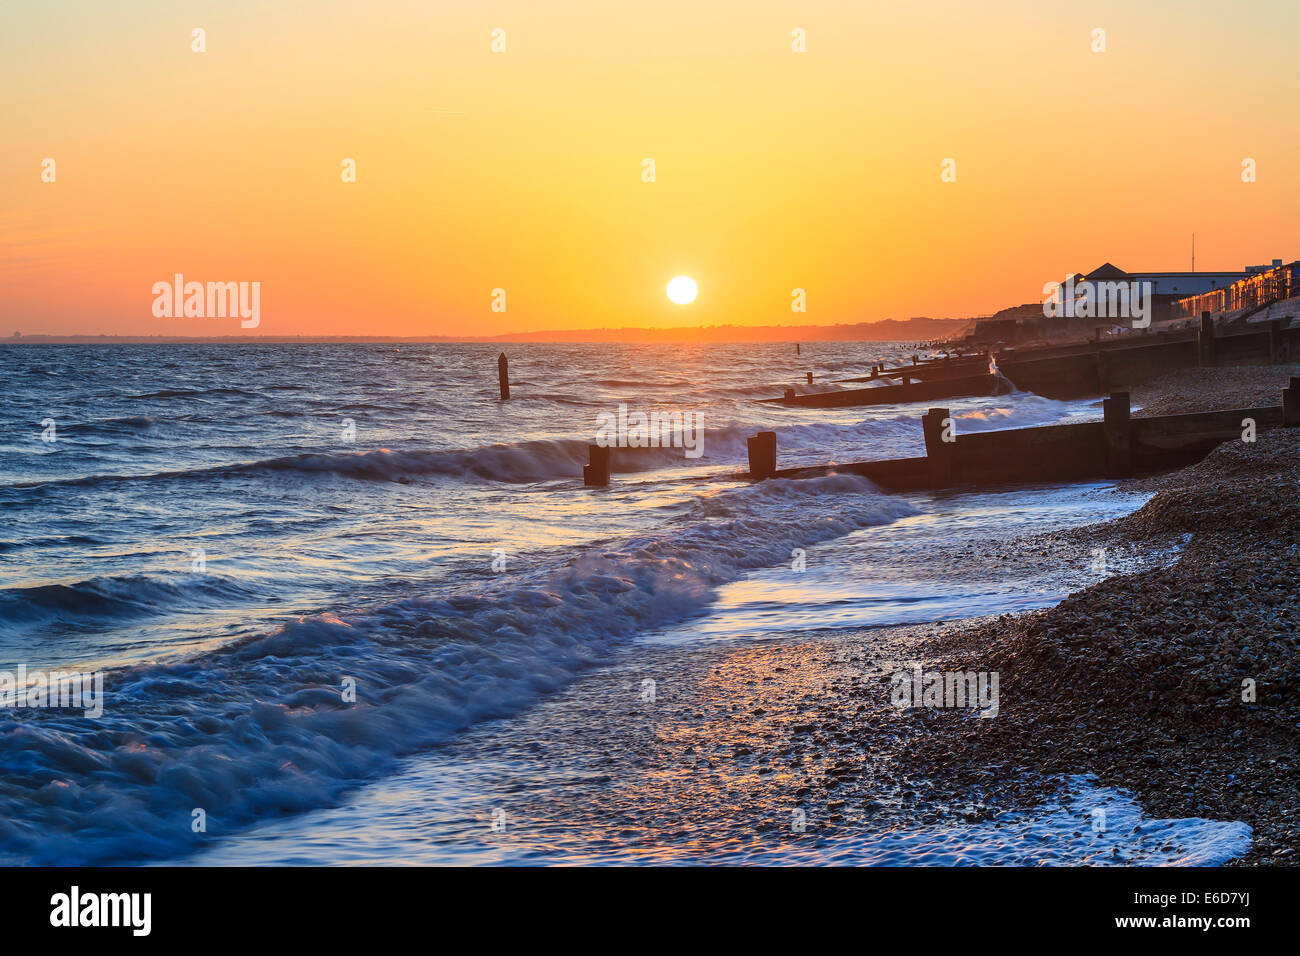 Groynes at sunset in Milford-on-Sea Hampshire England UK Europe - Stock Image